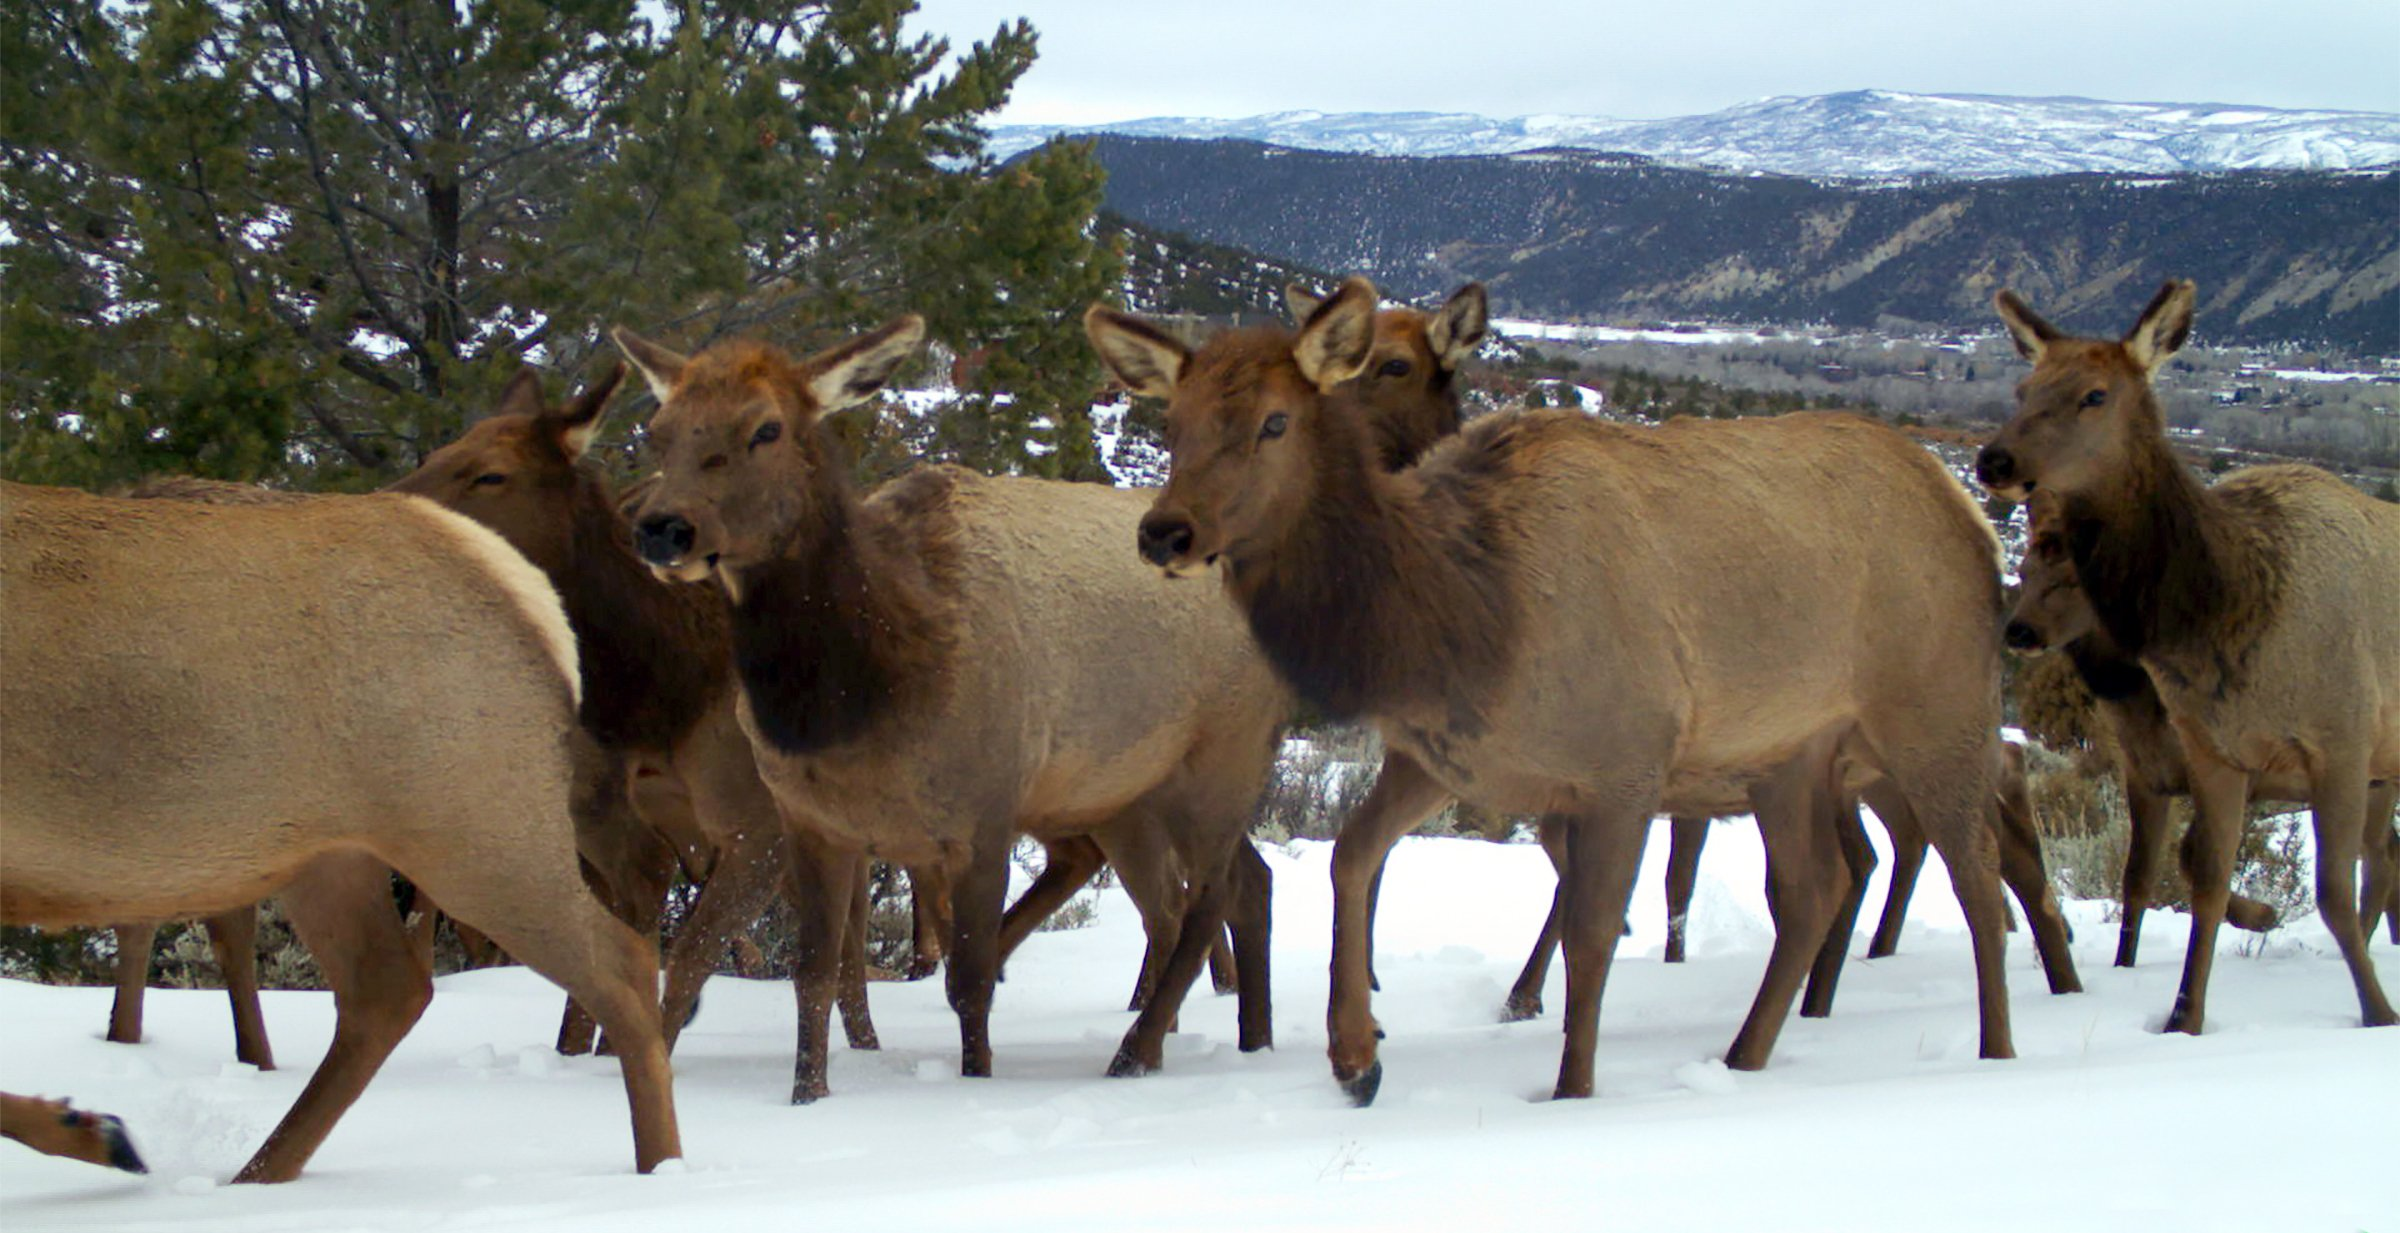 A wildlife camera captured this image of a herd of elk on Glassier Open Space. Adequate cover, shallower snows, and access to shrubby forage, typical of habitat on the Crown, are features that species like elk and deer rely on to survive winter.